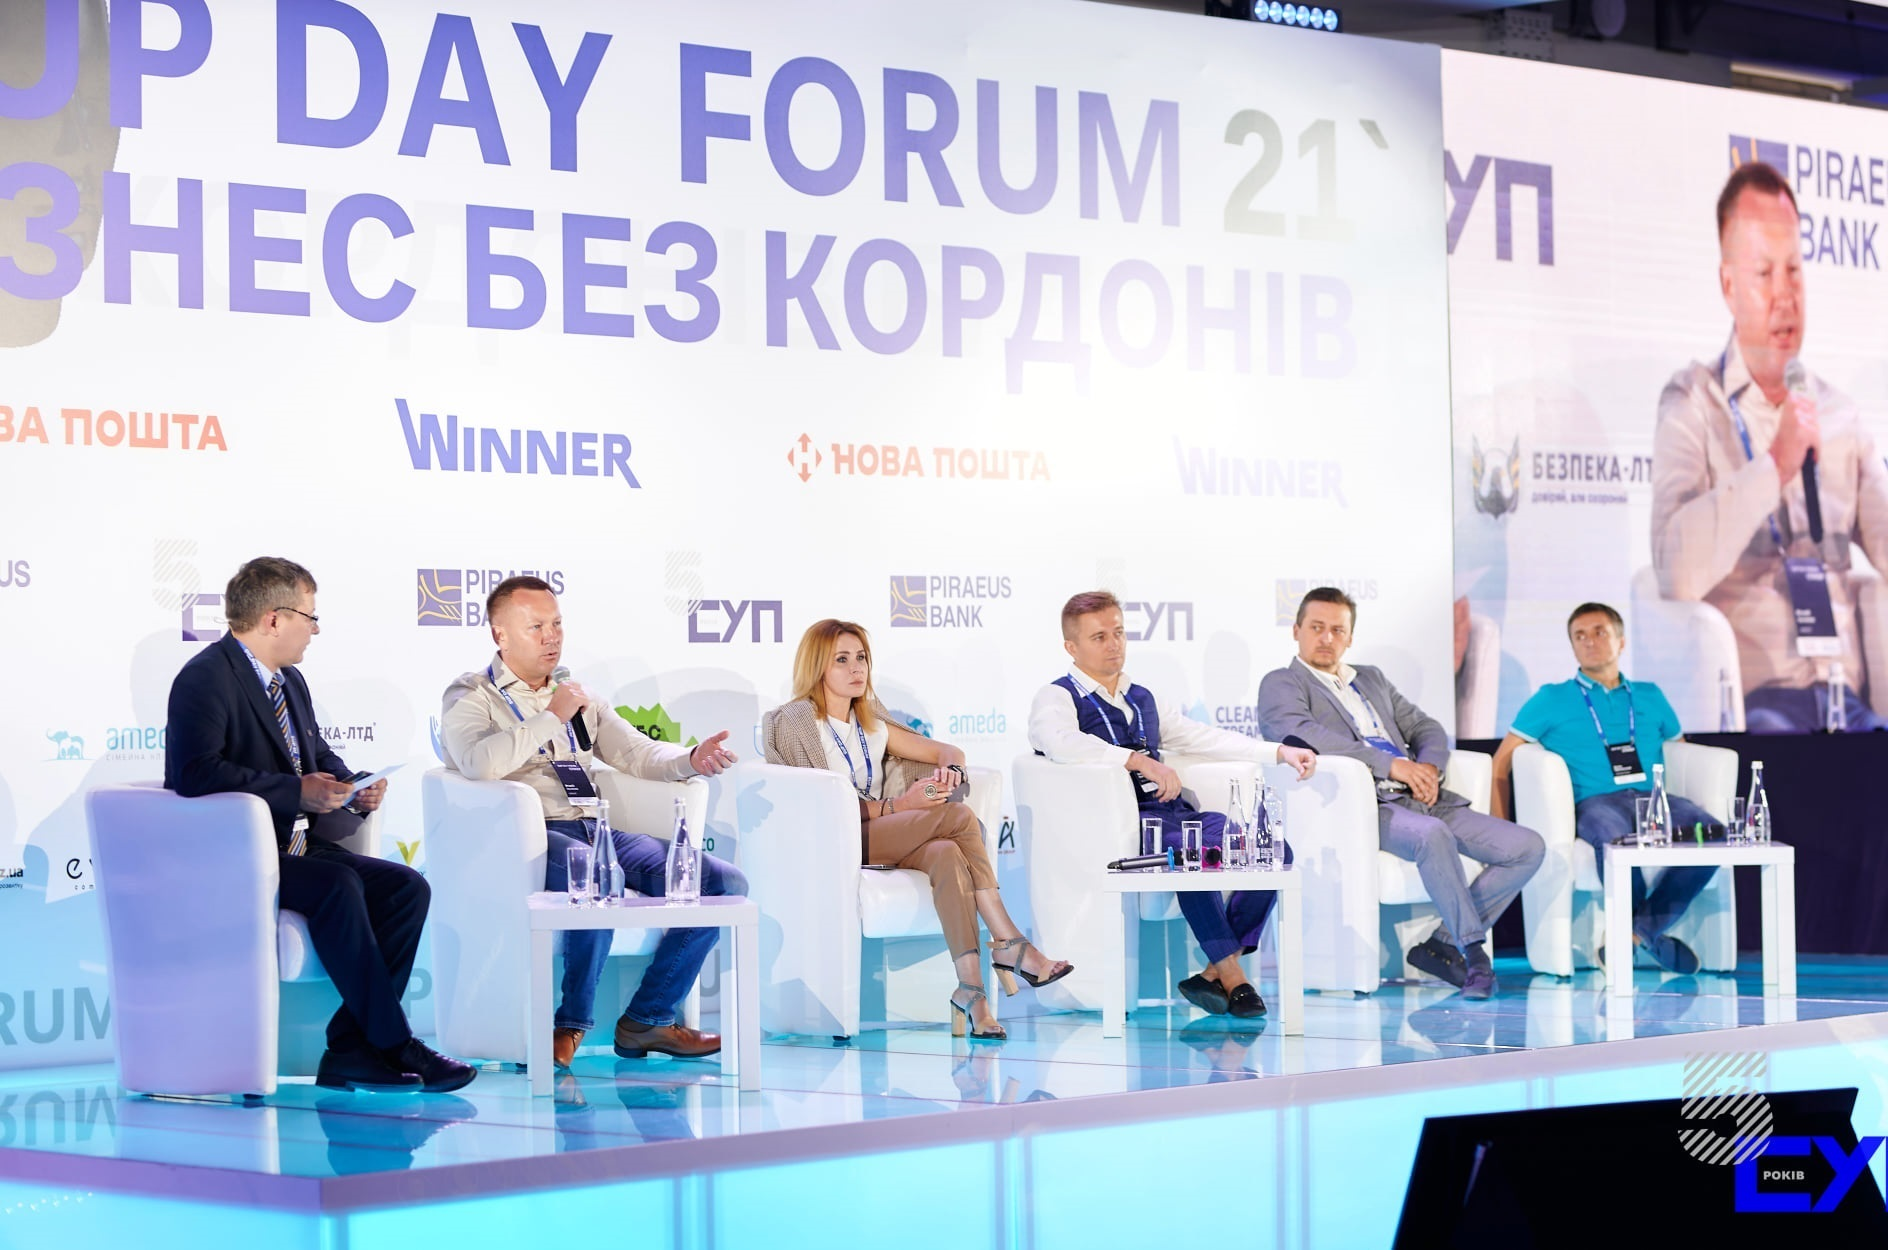 SUP DAY FORUM 2021